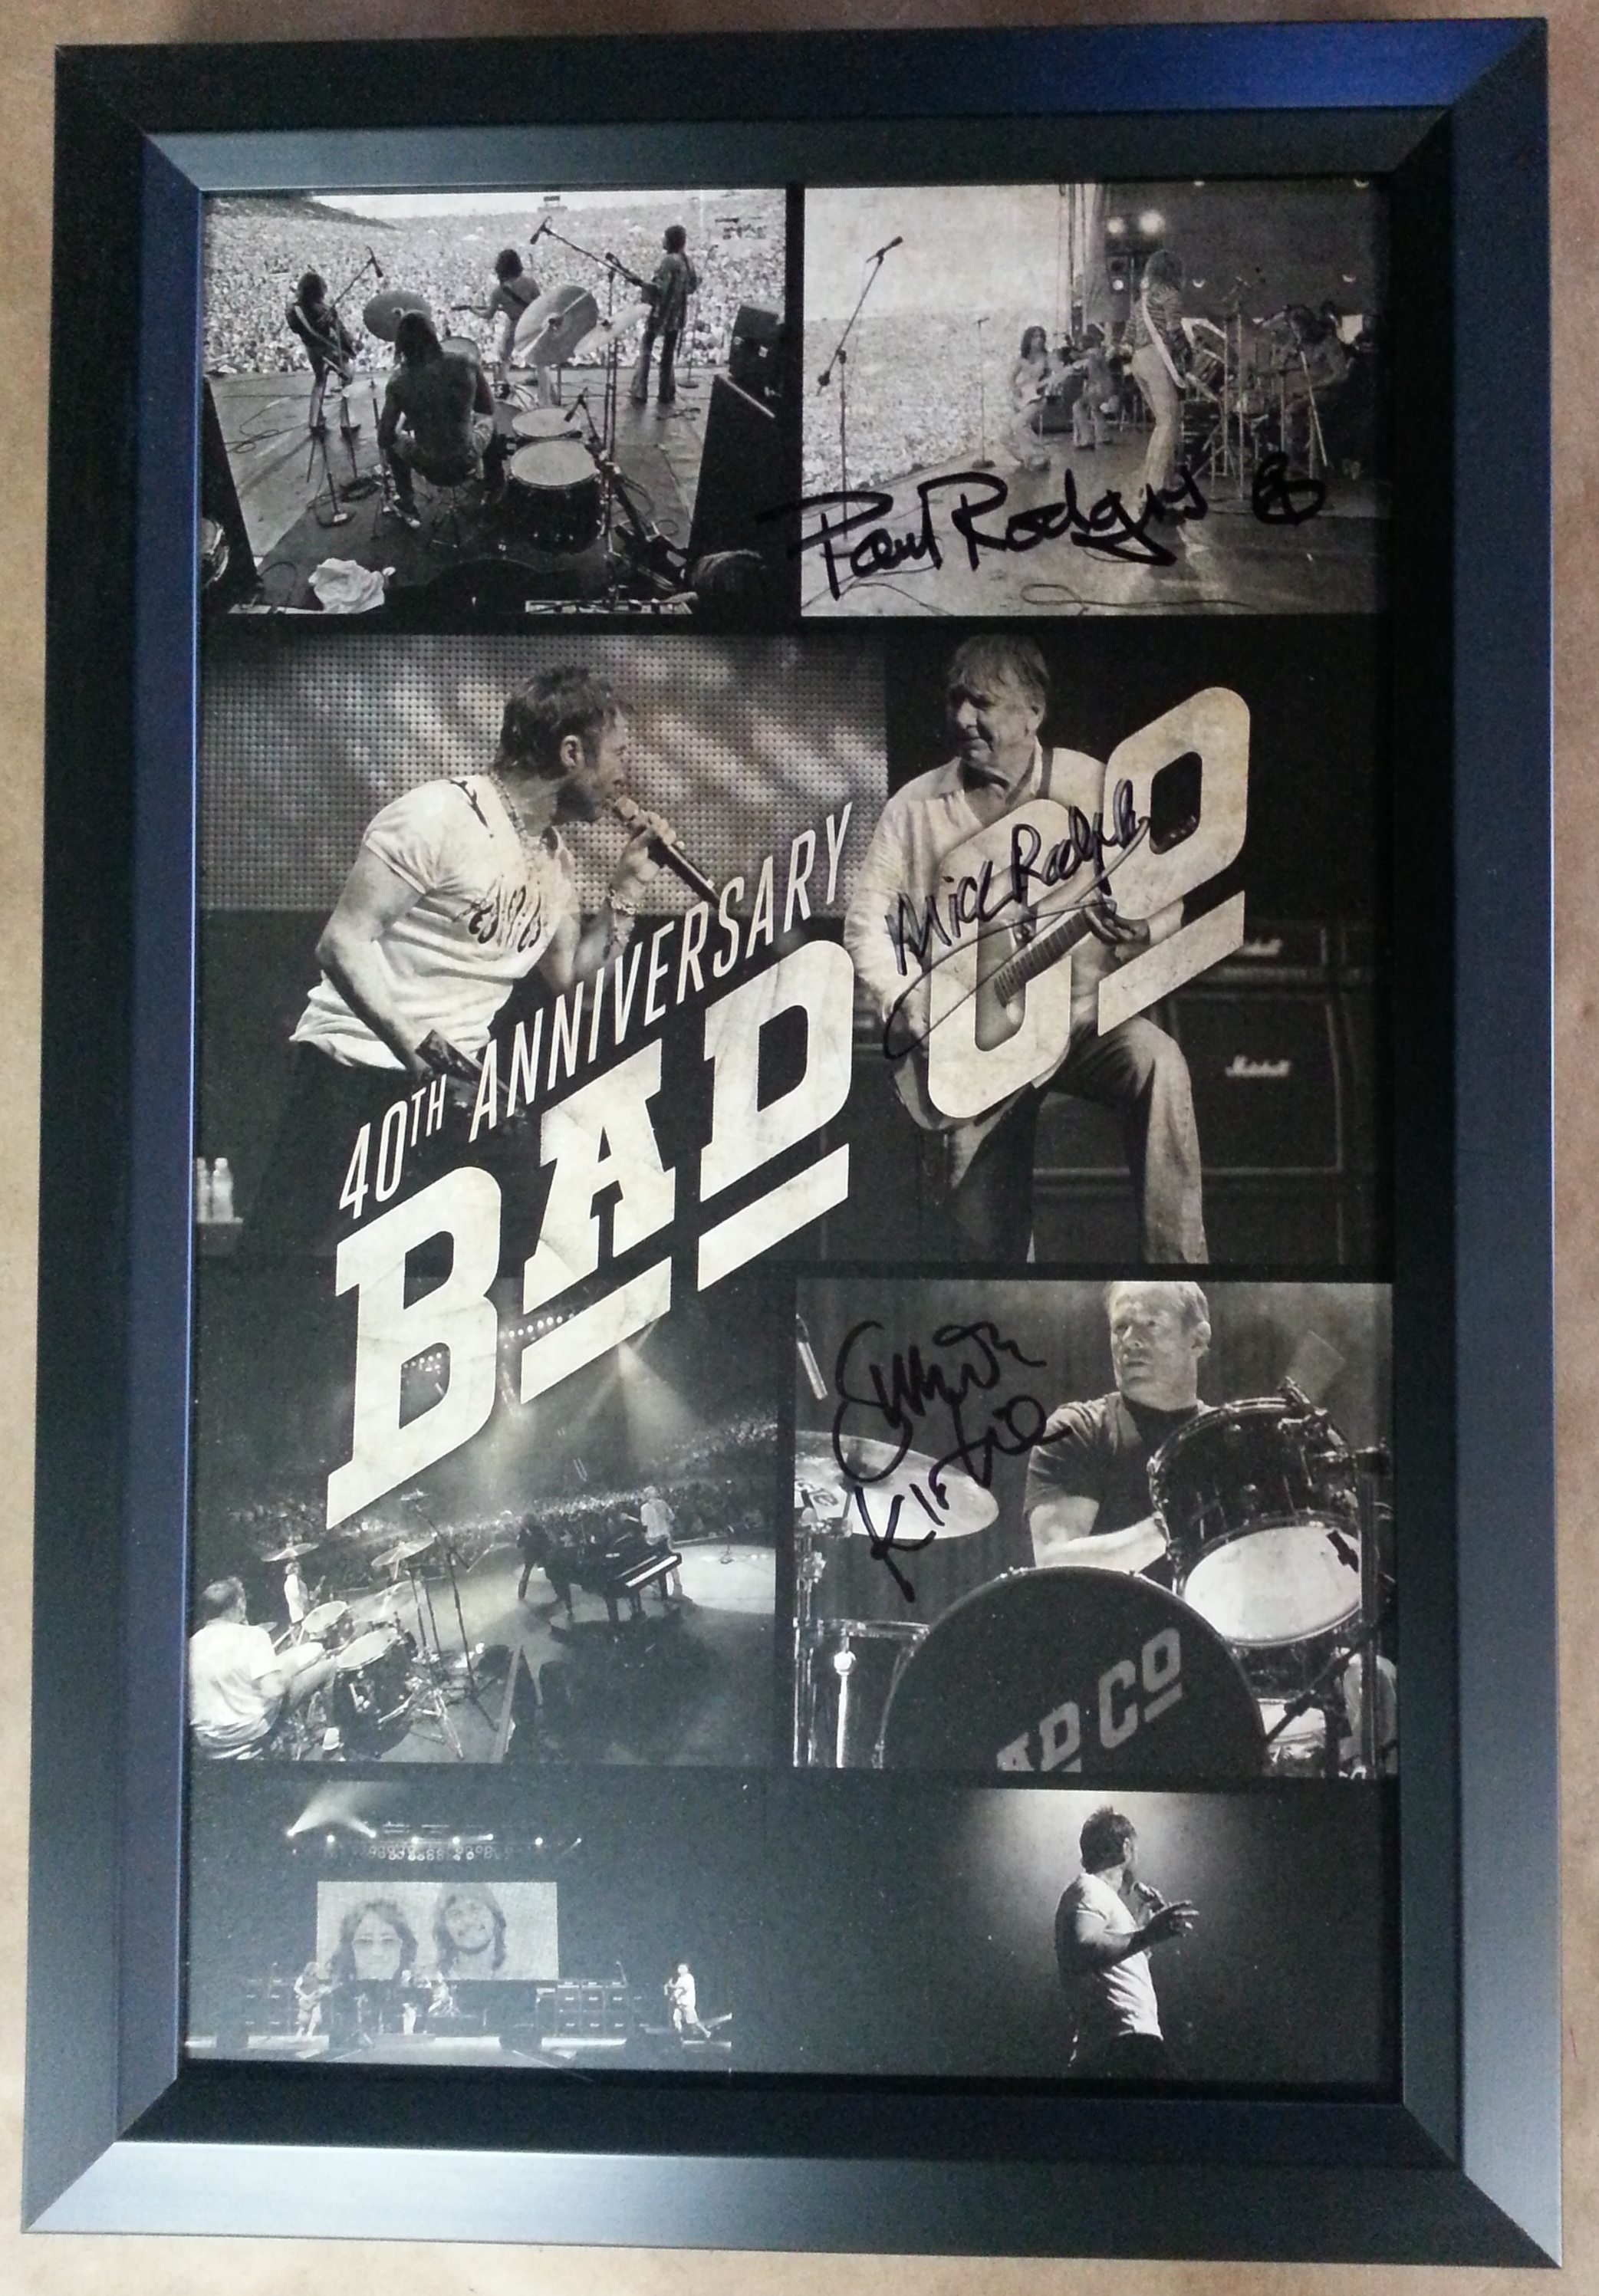 Framed Bad Company Poster Autographed Columbia Frame Shop